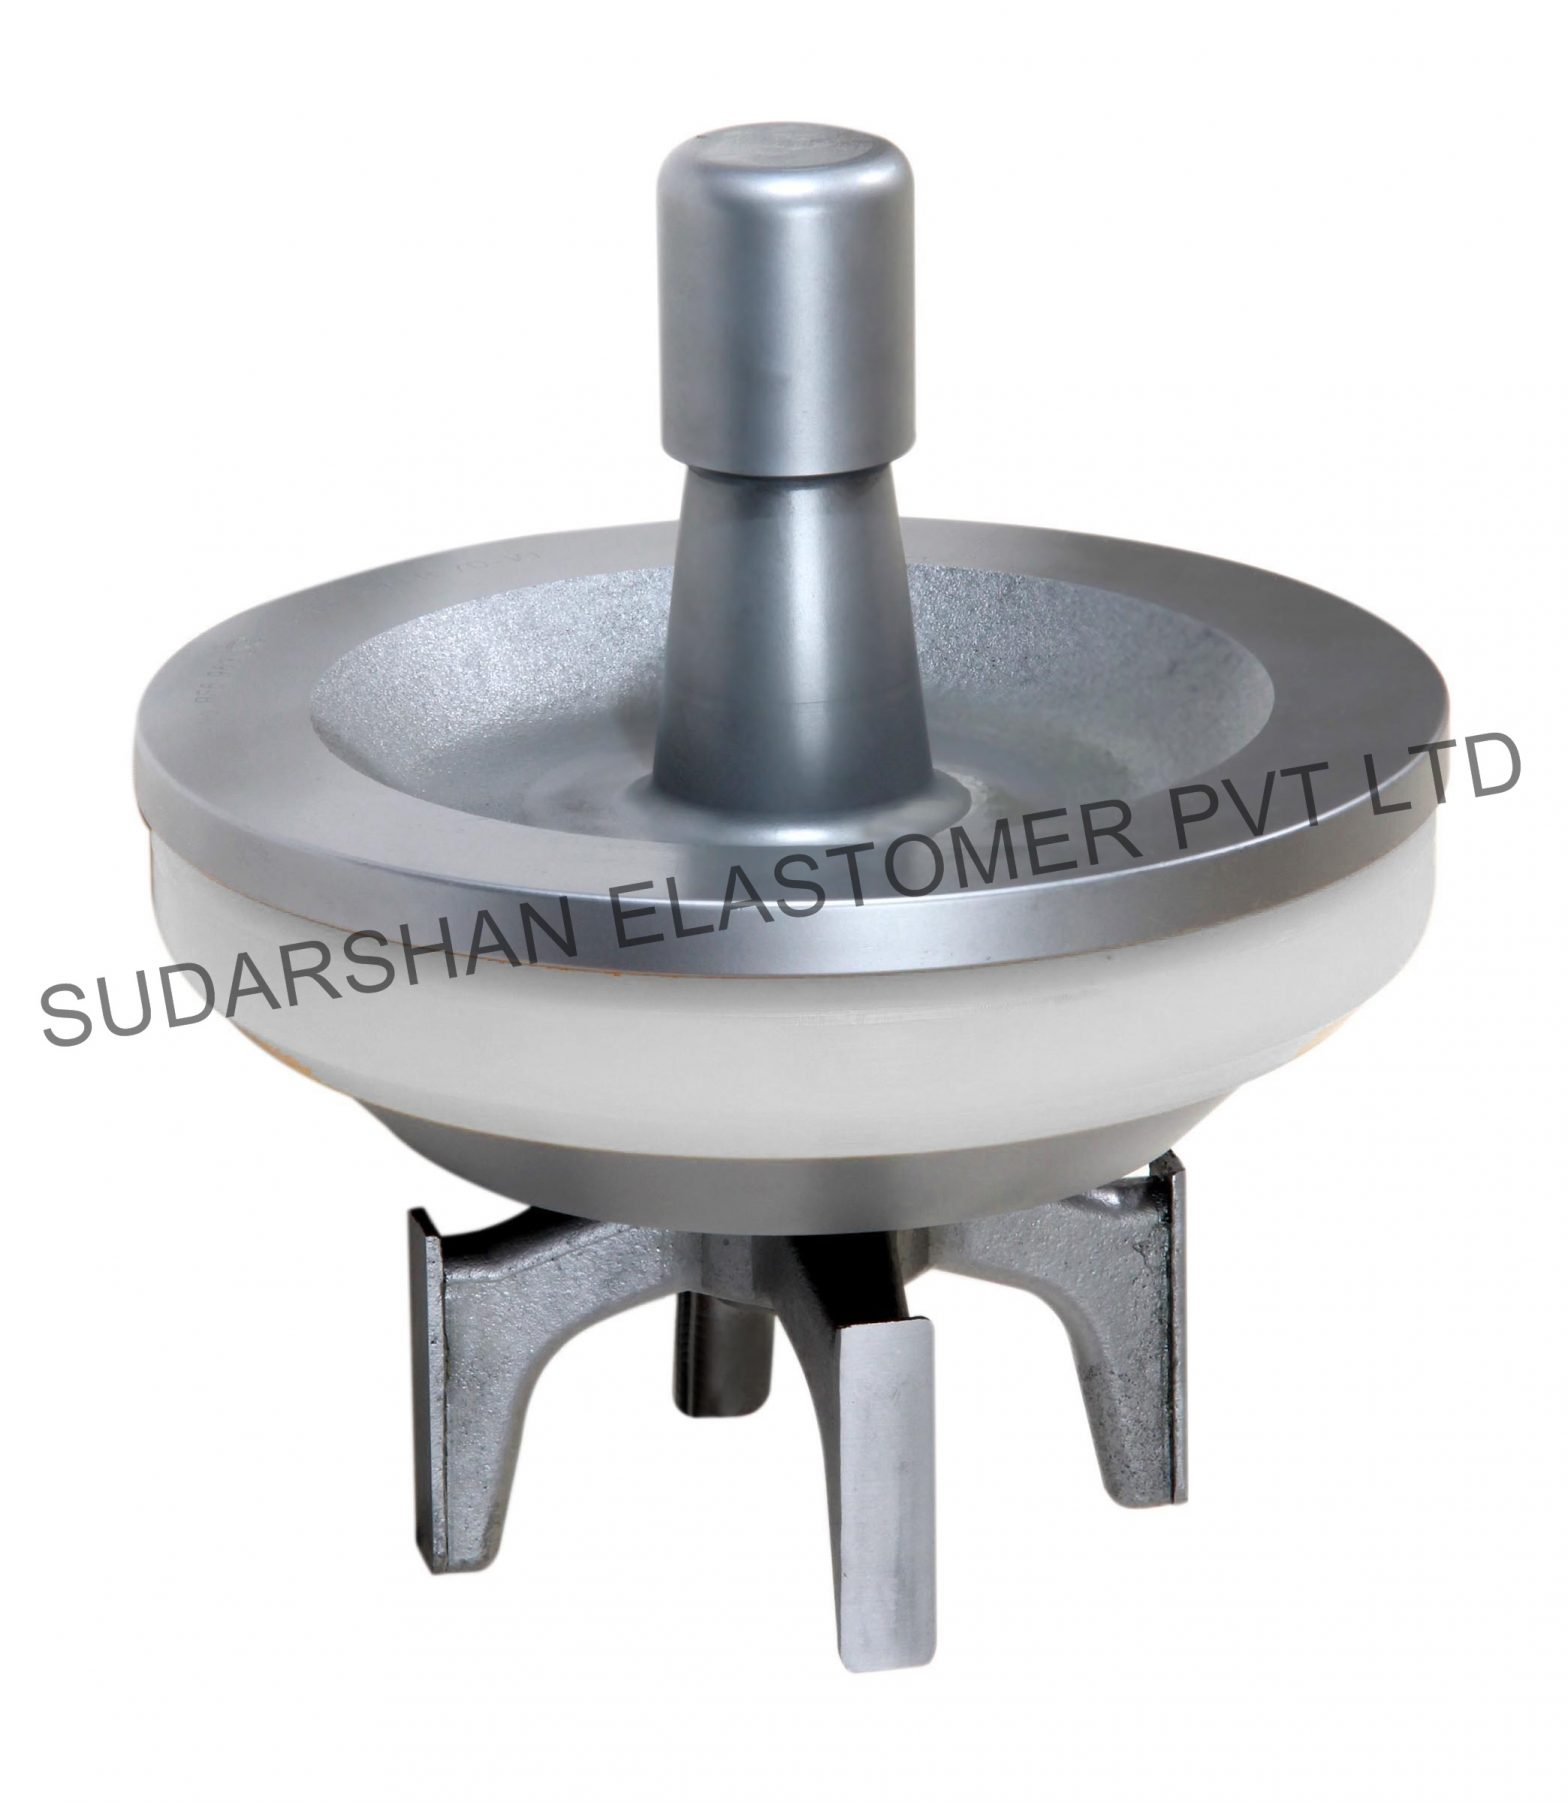 PERFORMANCE VALVE (HIGH TEMPERATURE) AND FULL OPEN SEAT